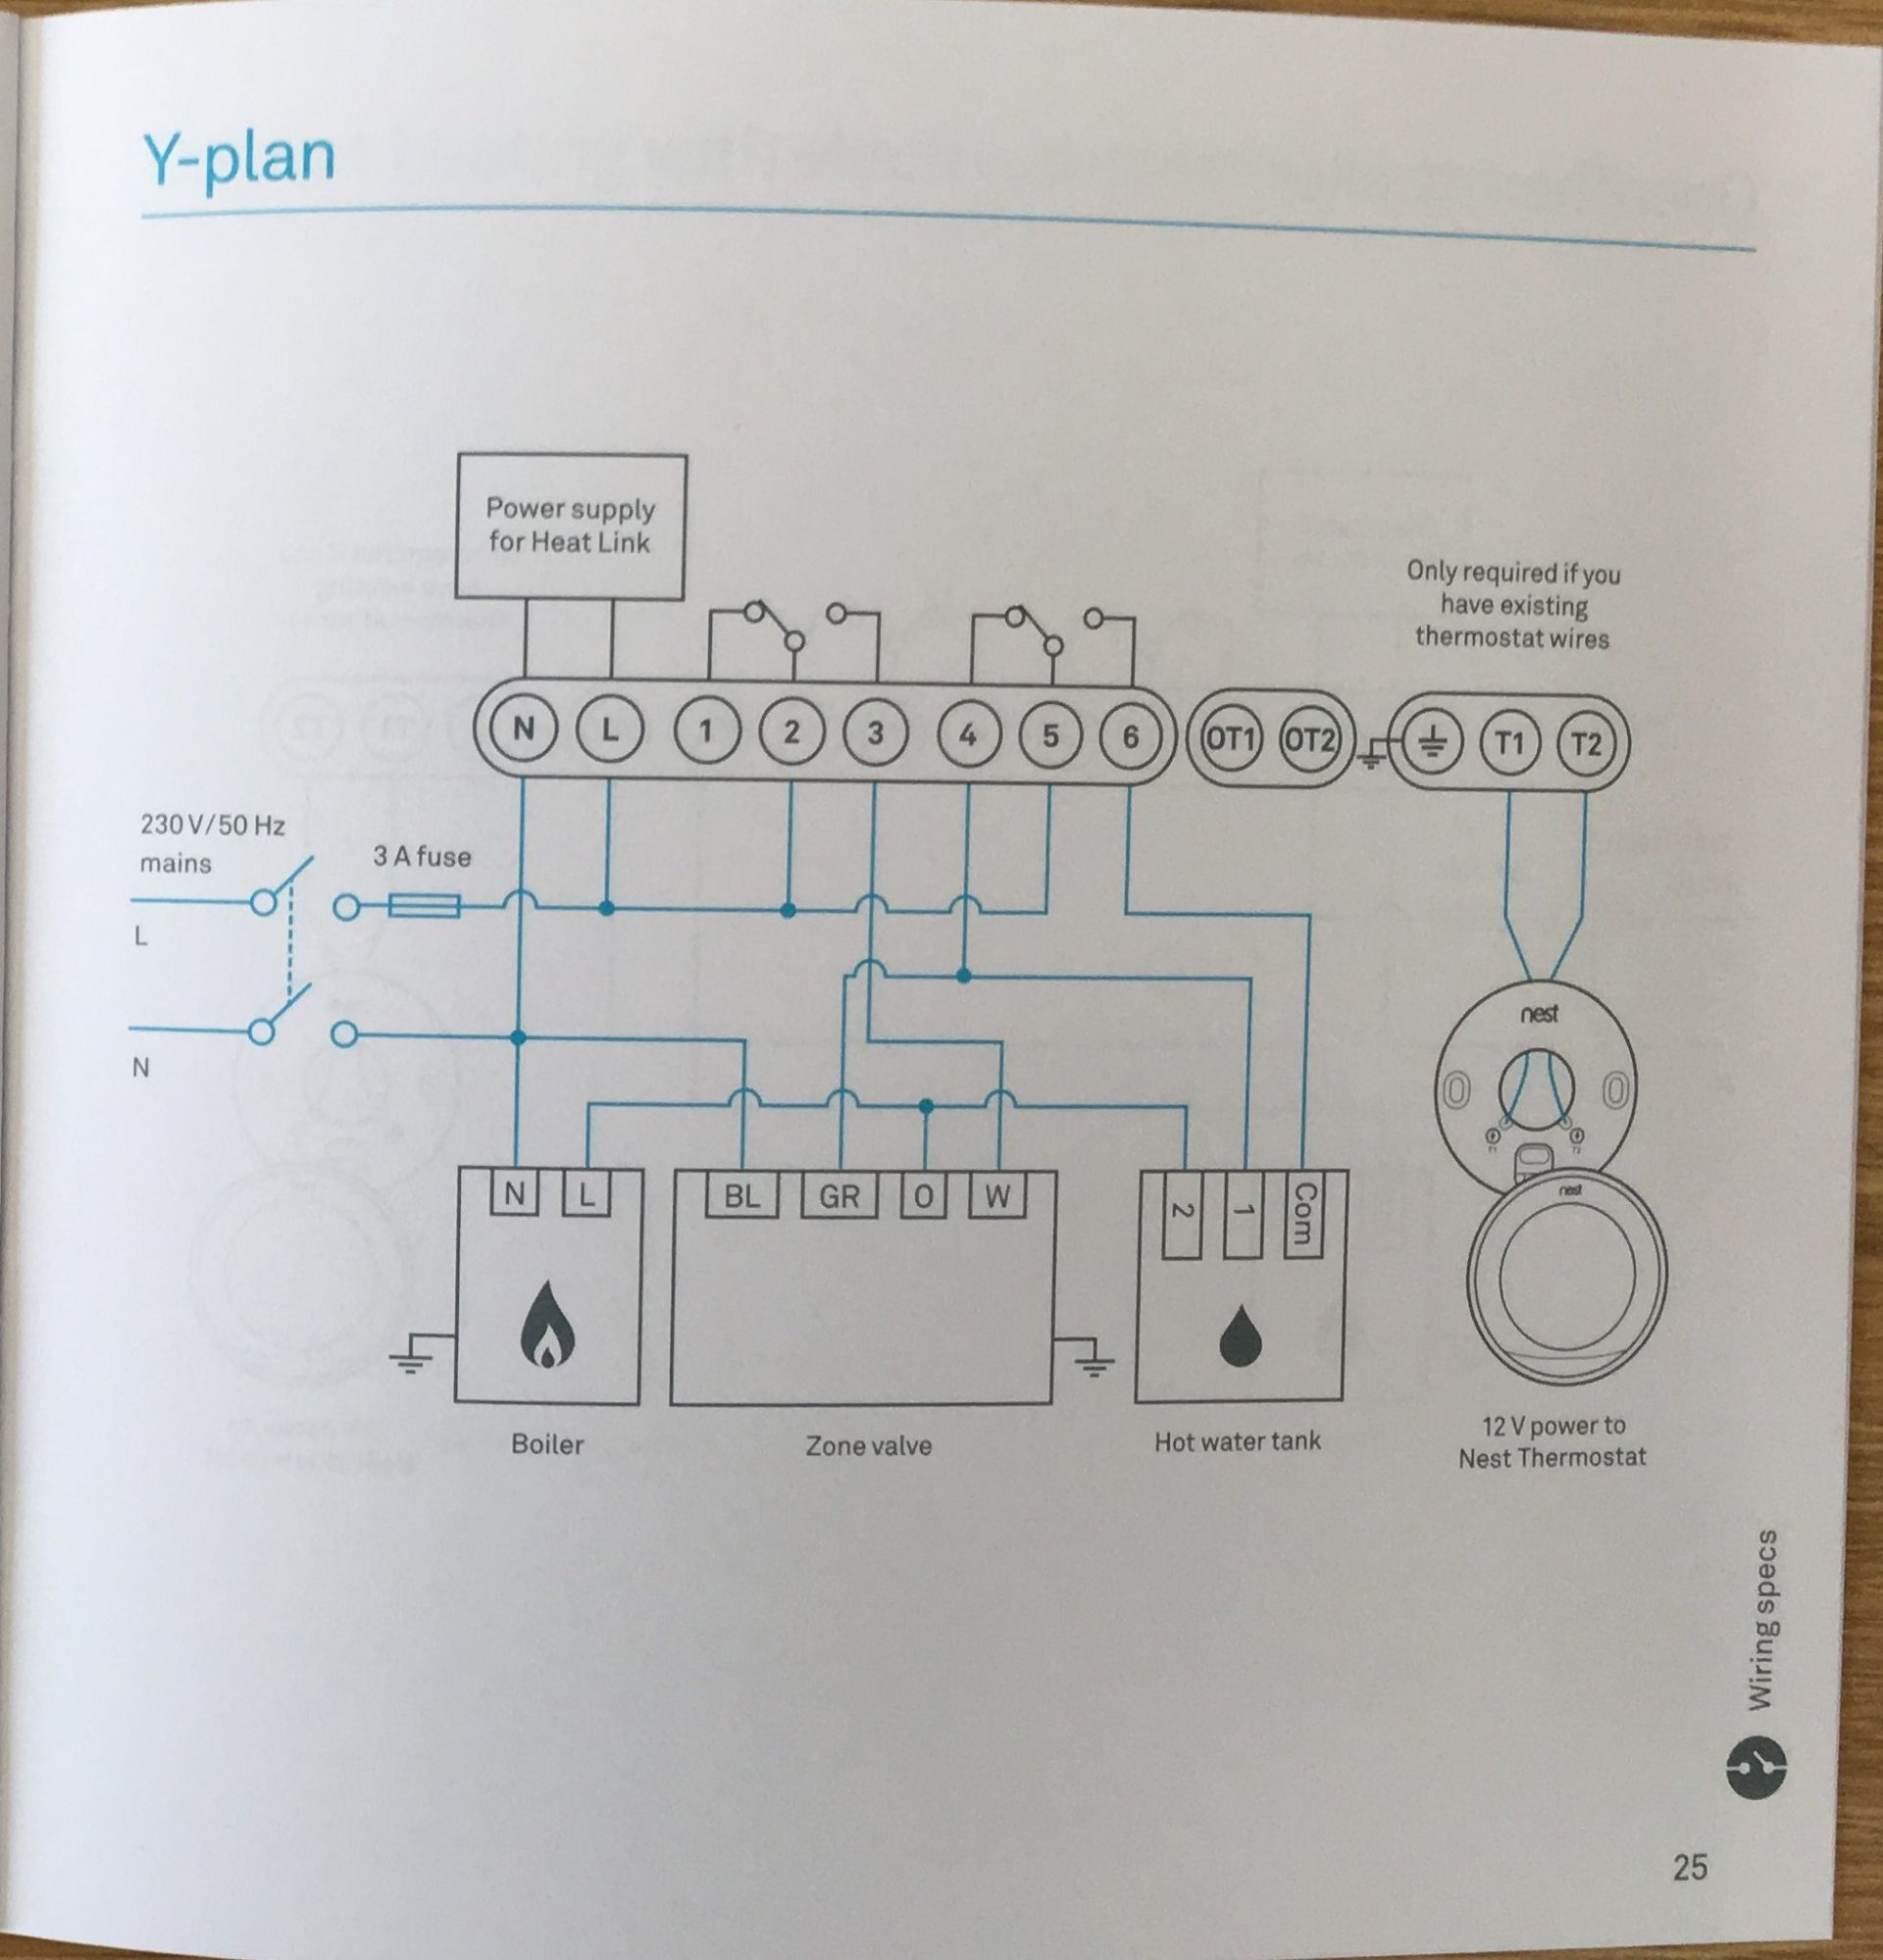 How To Install The Nest Learning Thermostat (3Rd Gen) In A Y-Plan - Nest 3Rd Gen Wiring Diagram Uk